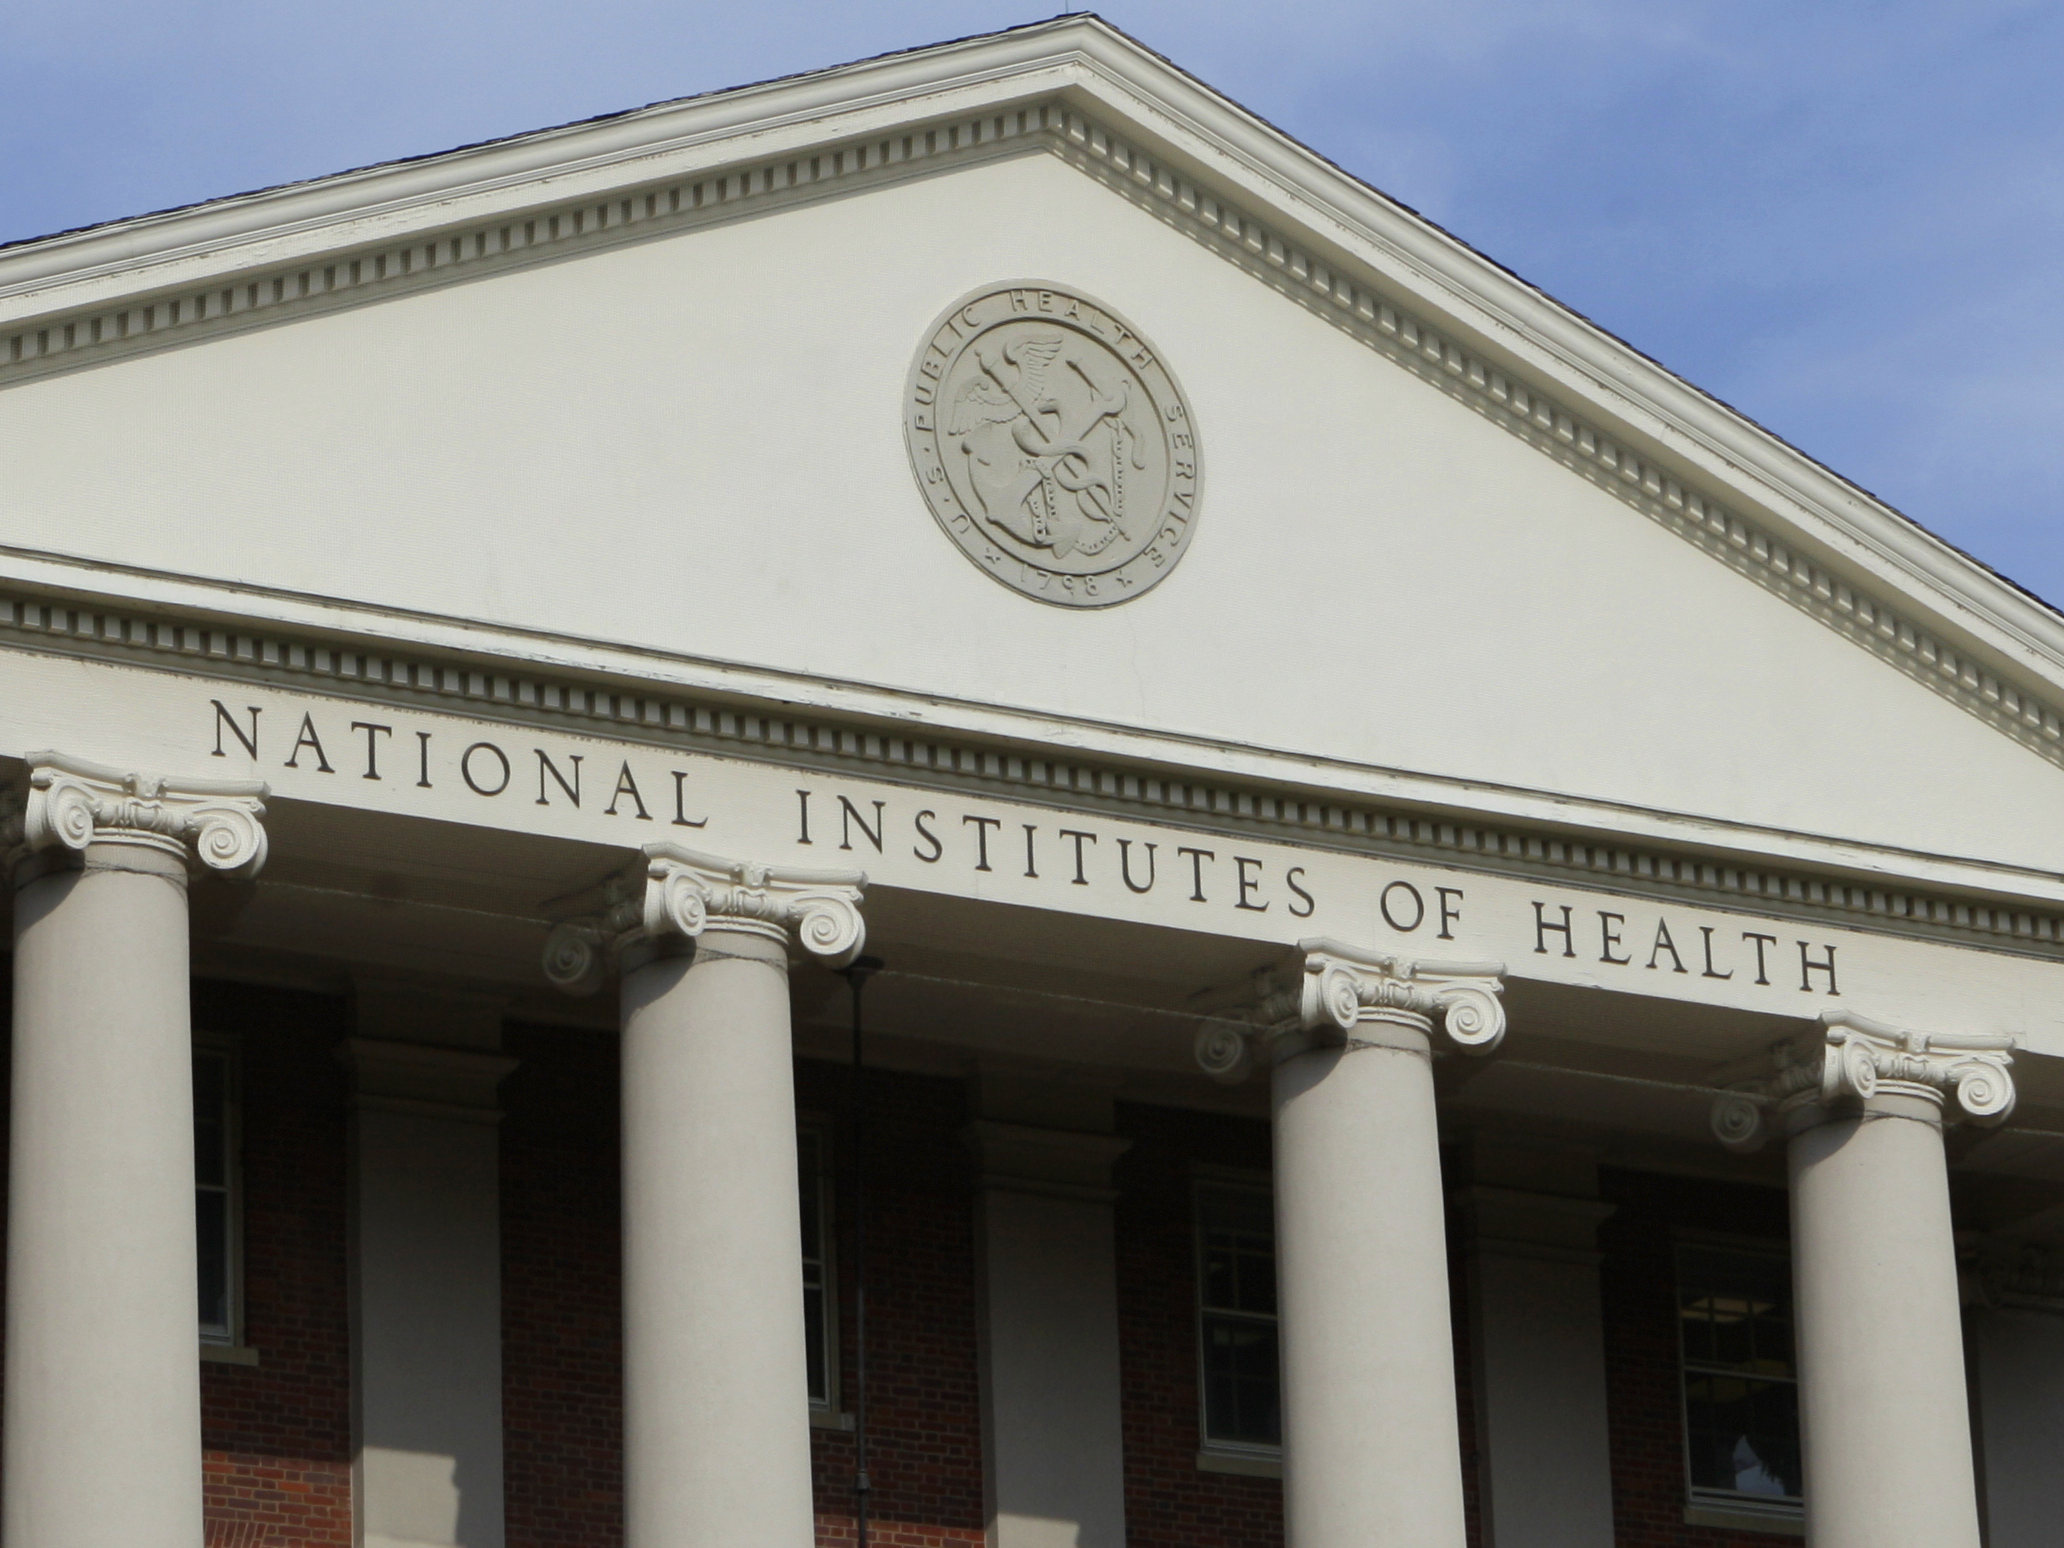 National Institute of Health's